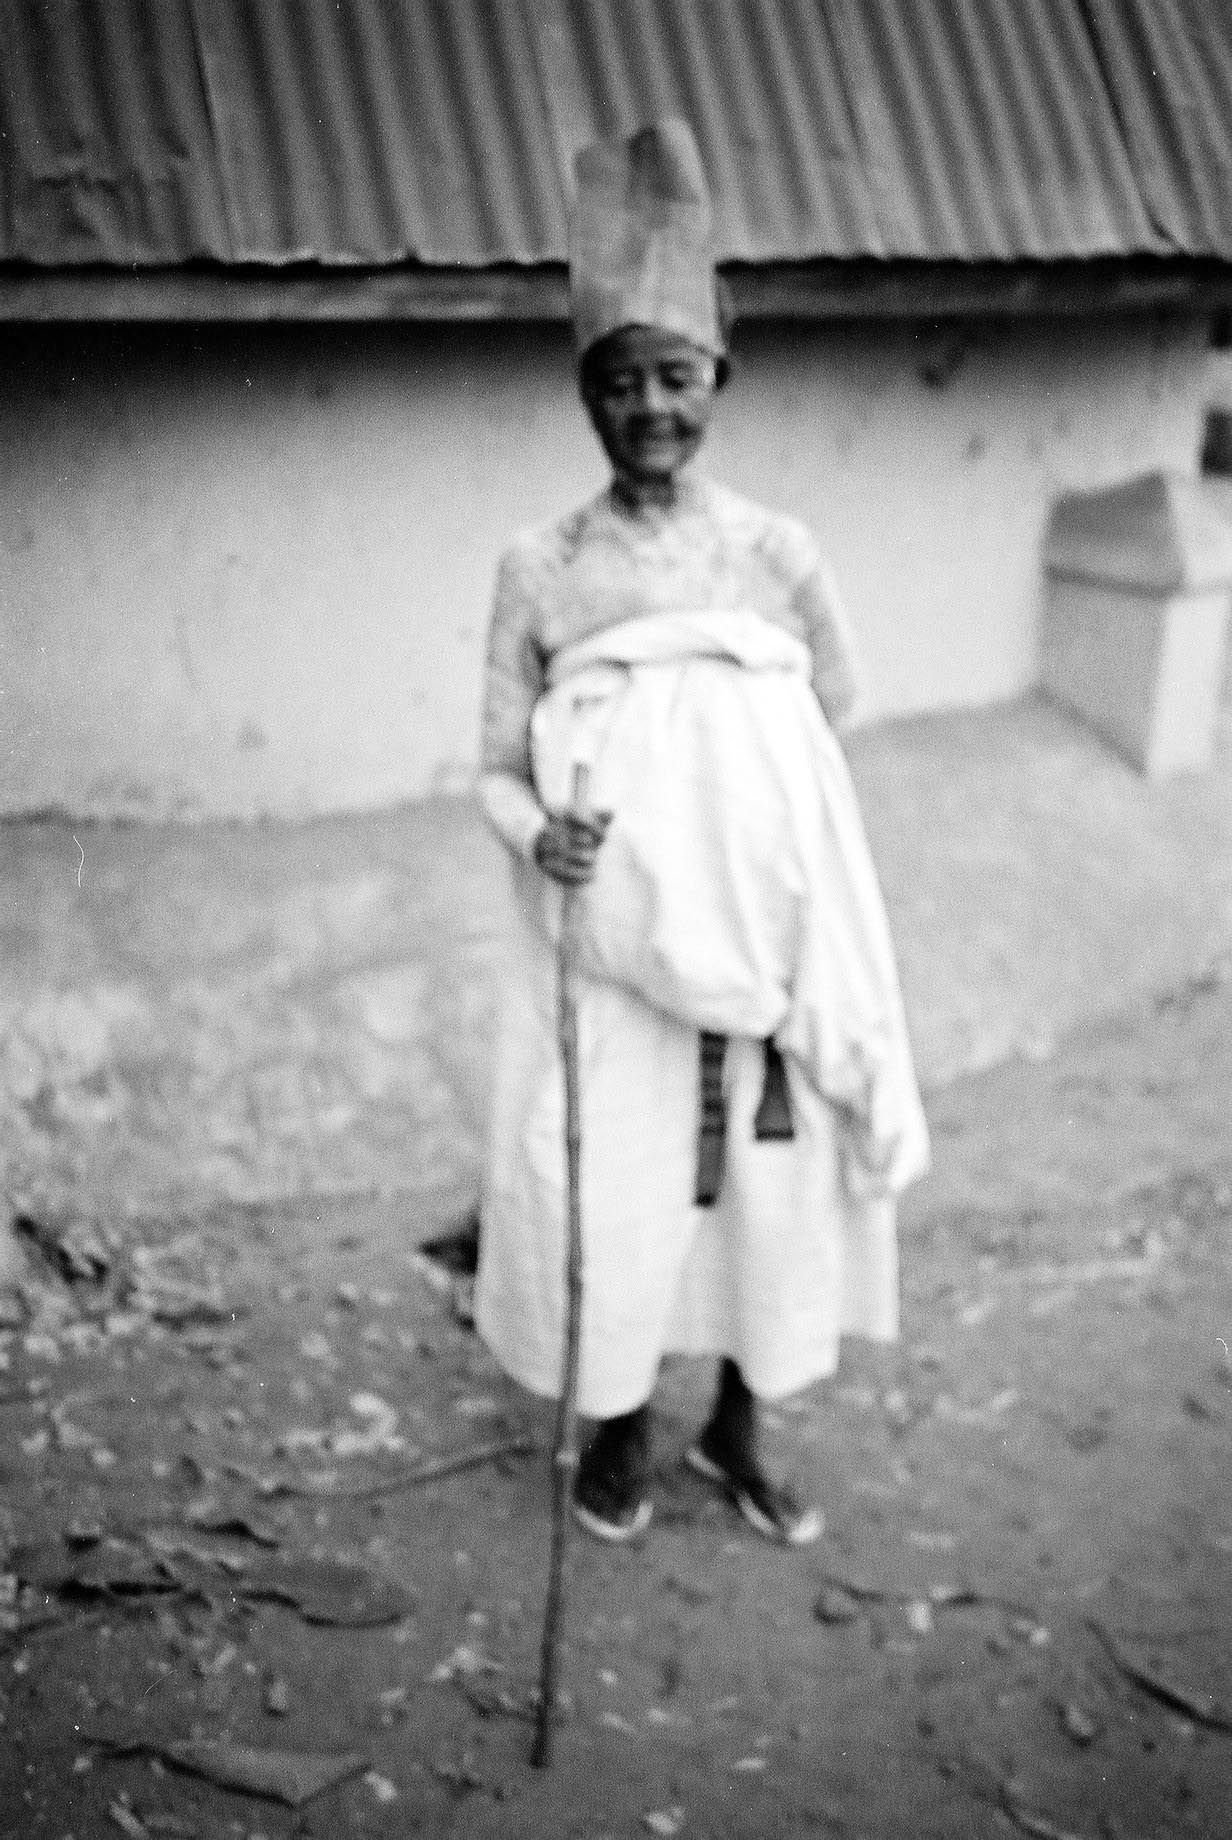 166 PHOTOGRAPH 5. An elderly woman on her way to a shrine. She has decorated her body with white clay as a sign of a successful ending of a ritual festival.